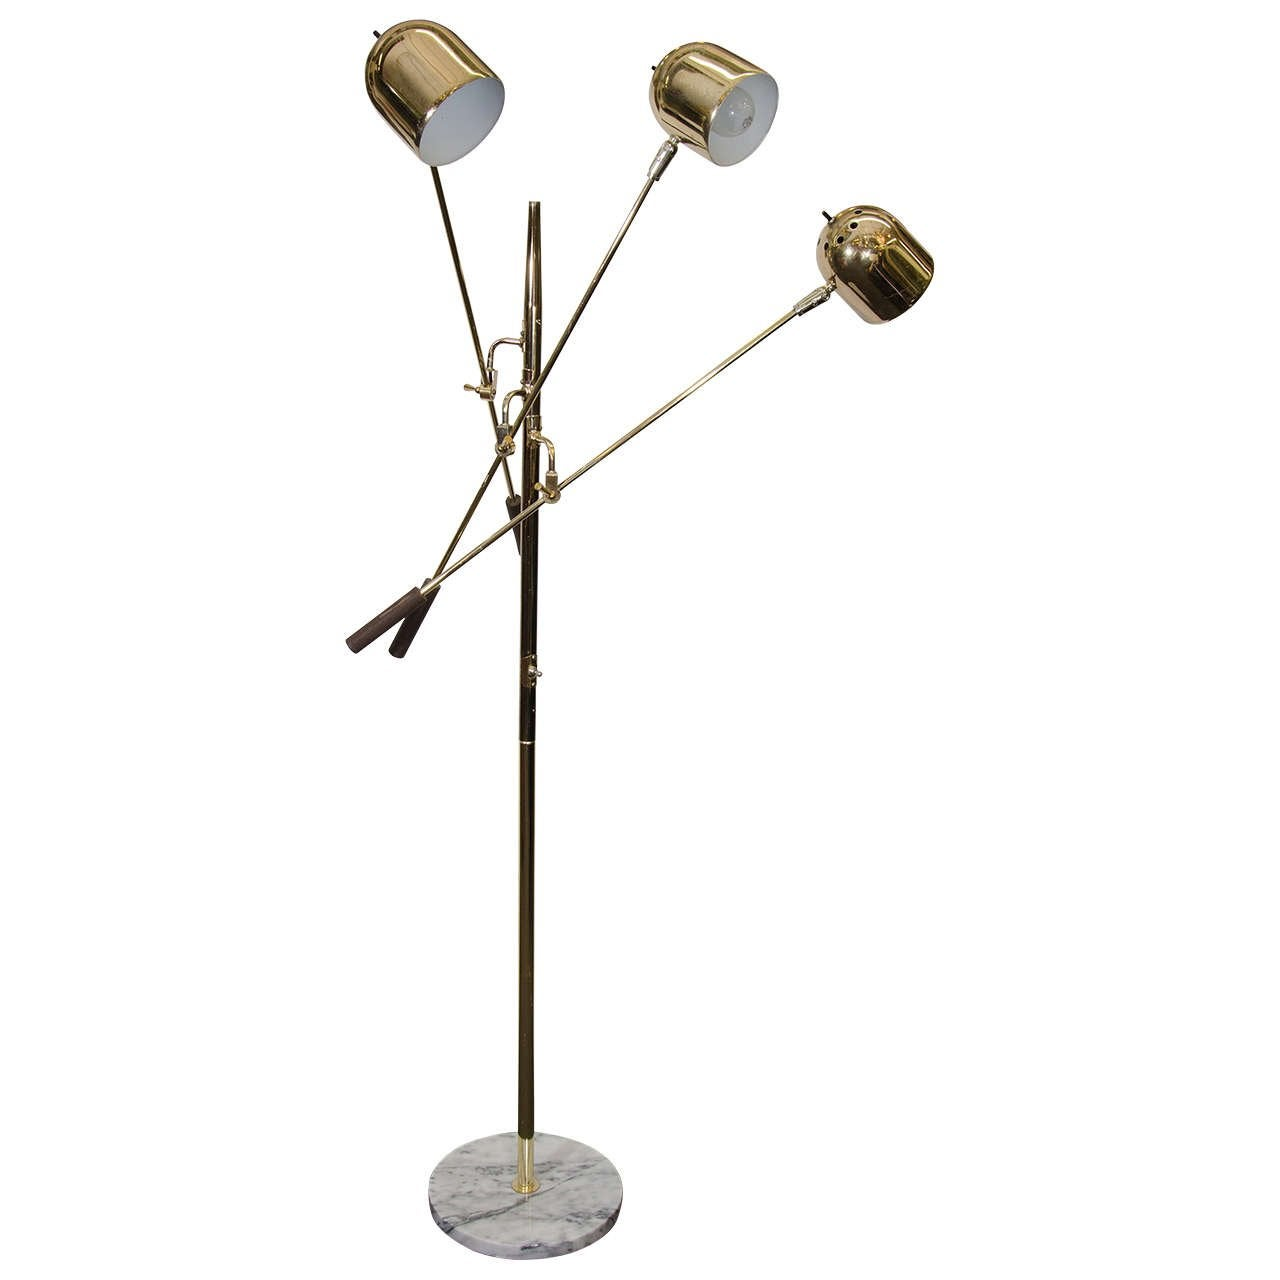 Ordinaire 1960s Italian Three Arm Brass Floor Lamp In Style Of Tempestini